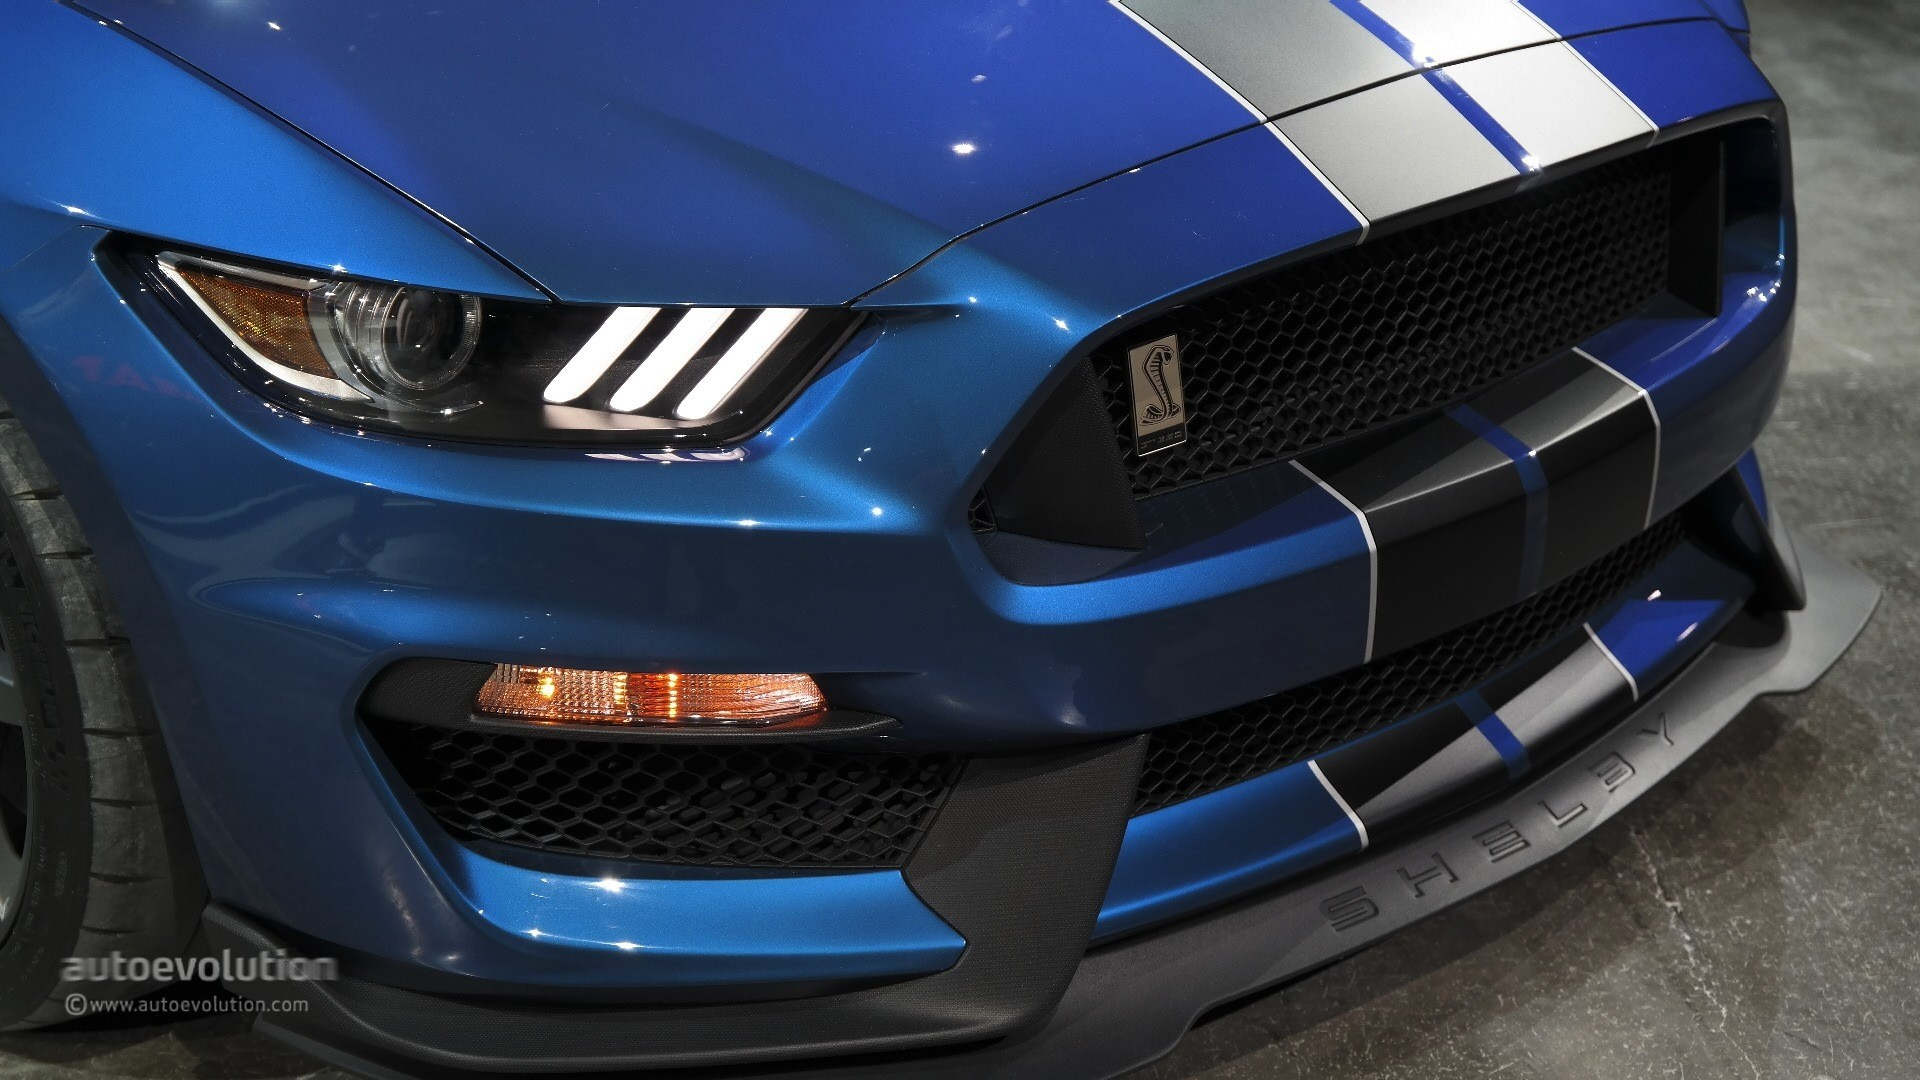 ford mustang shelby gt350 wallpapers images photos pictures backgrounds. Black Bedroom Furniture Sets. Home Design Ideas